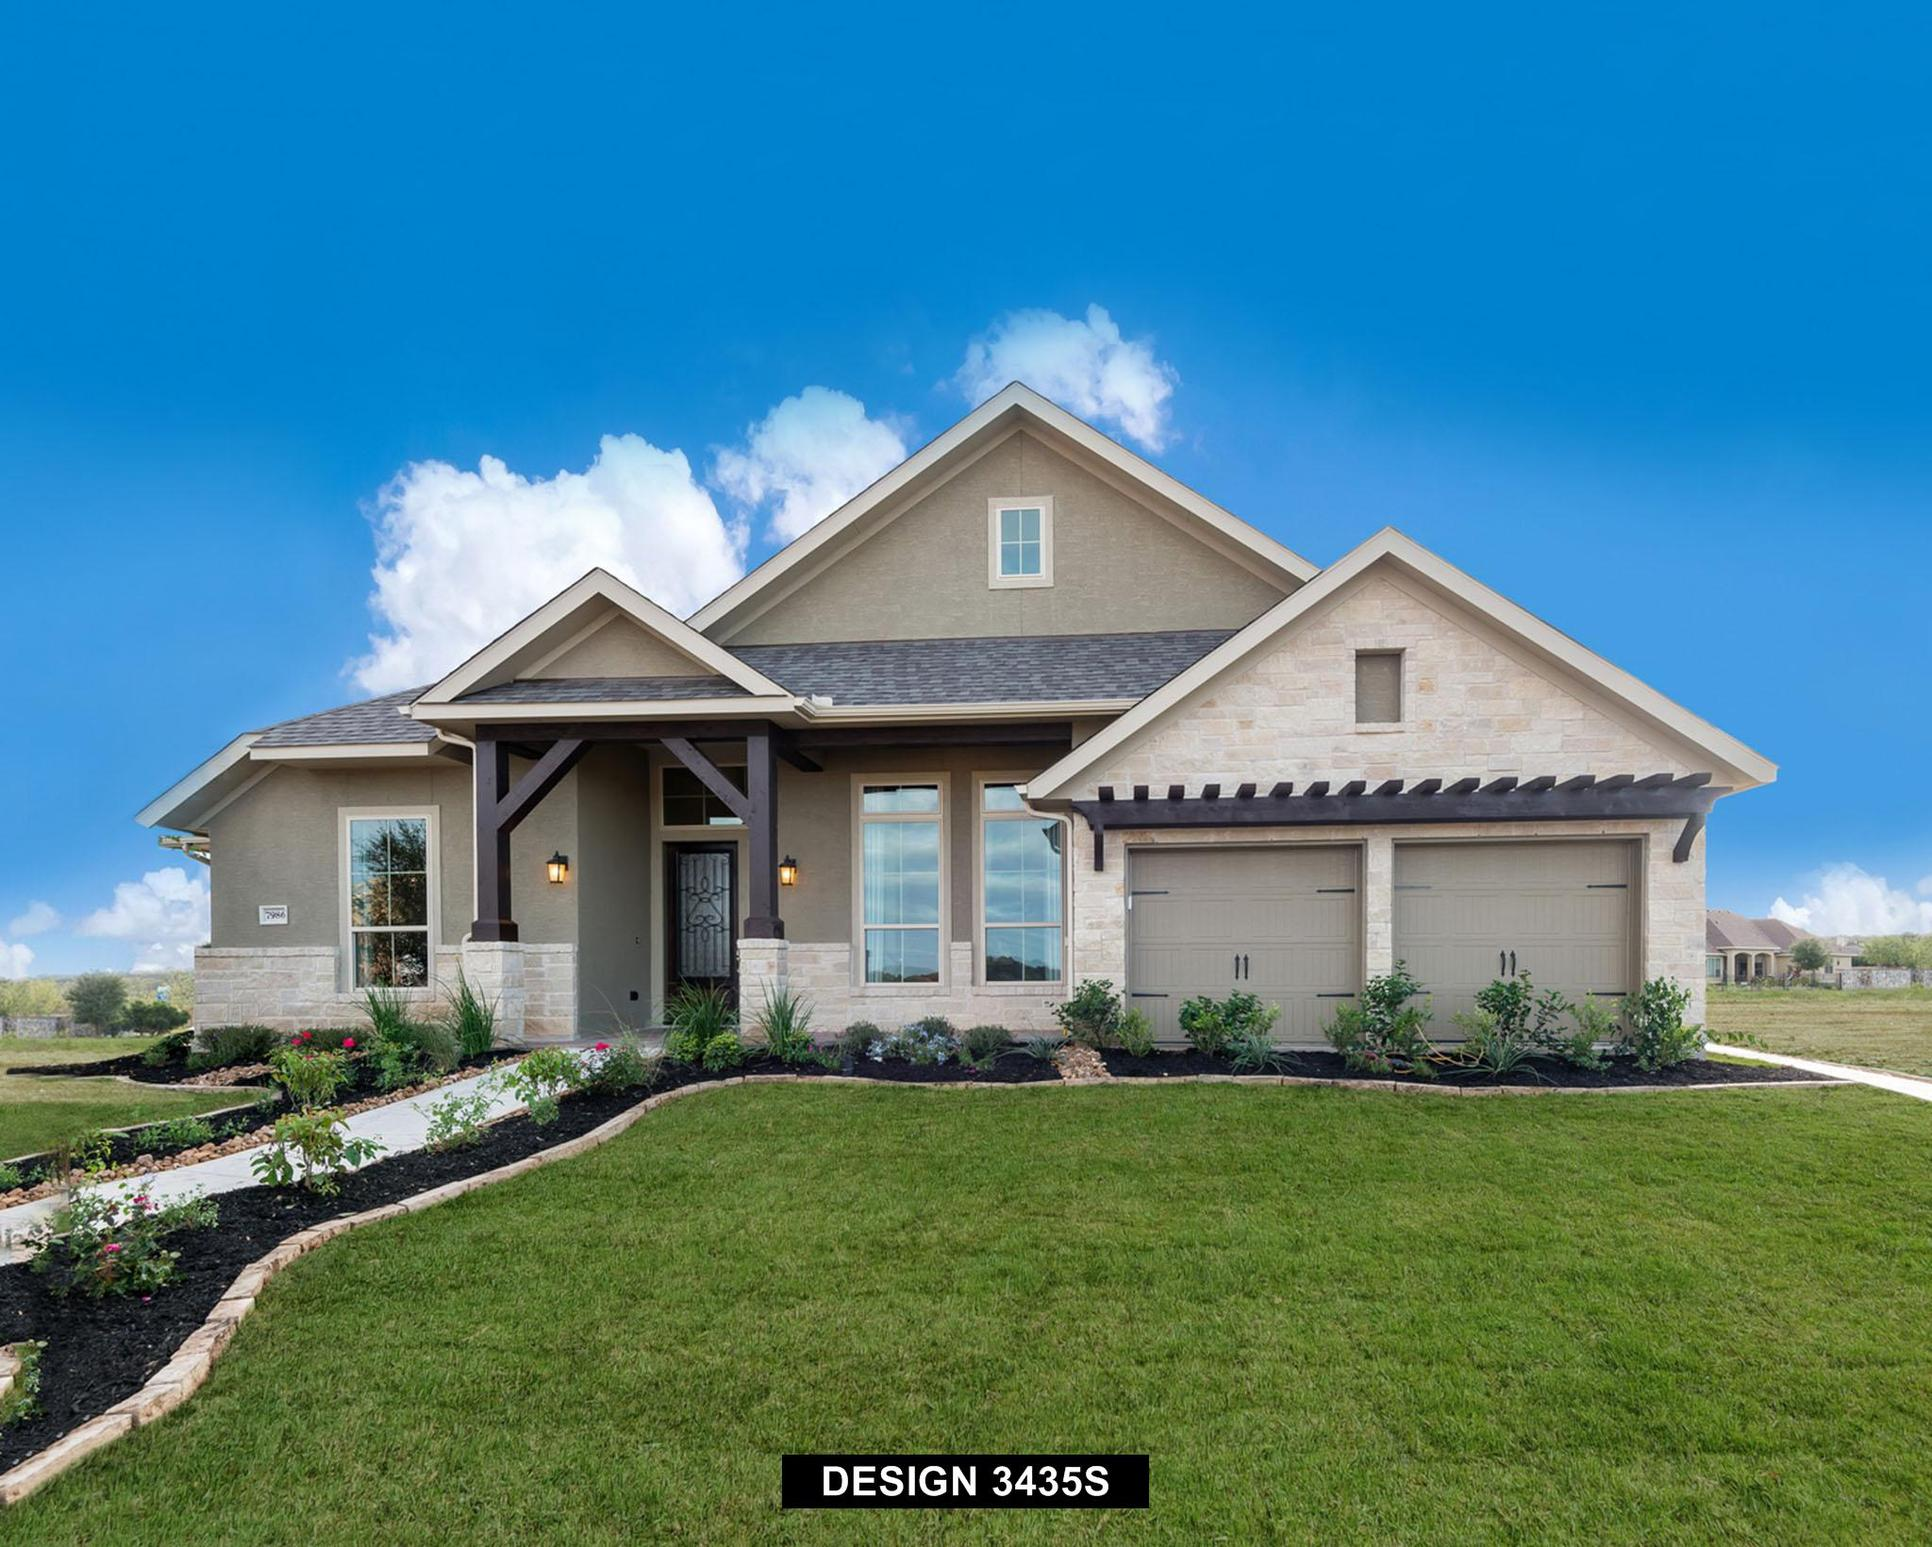 Plan 3435S:Representative photo.  Features and specifications may vary by community.